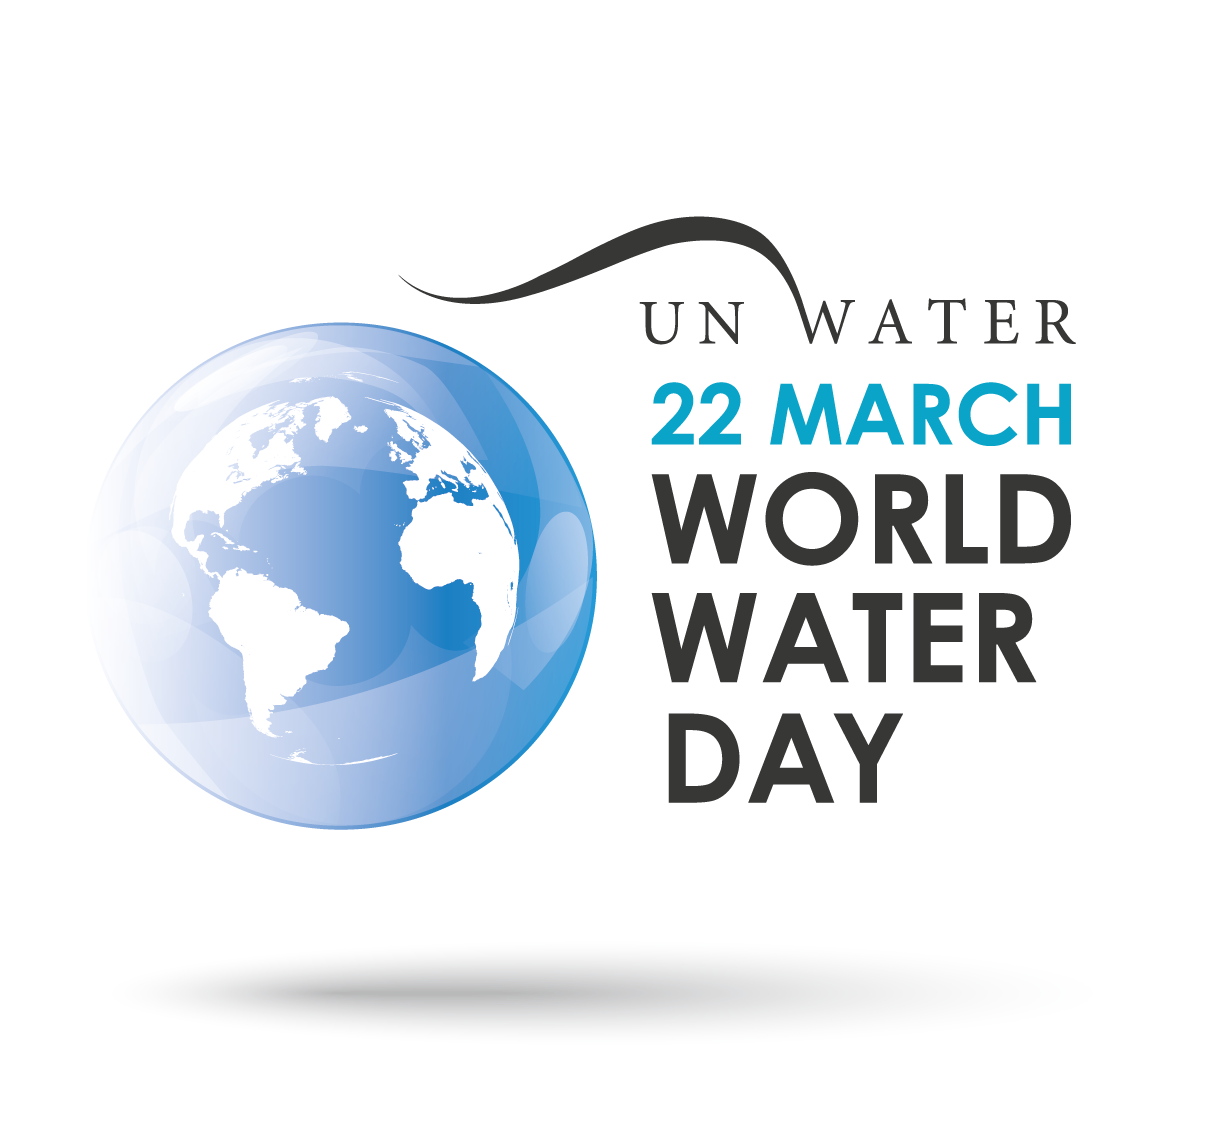 World Water Day 2021 - a